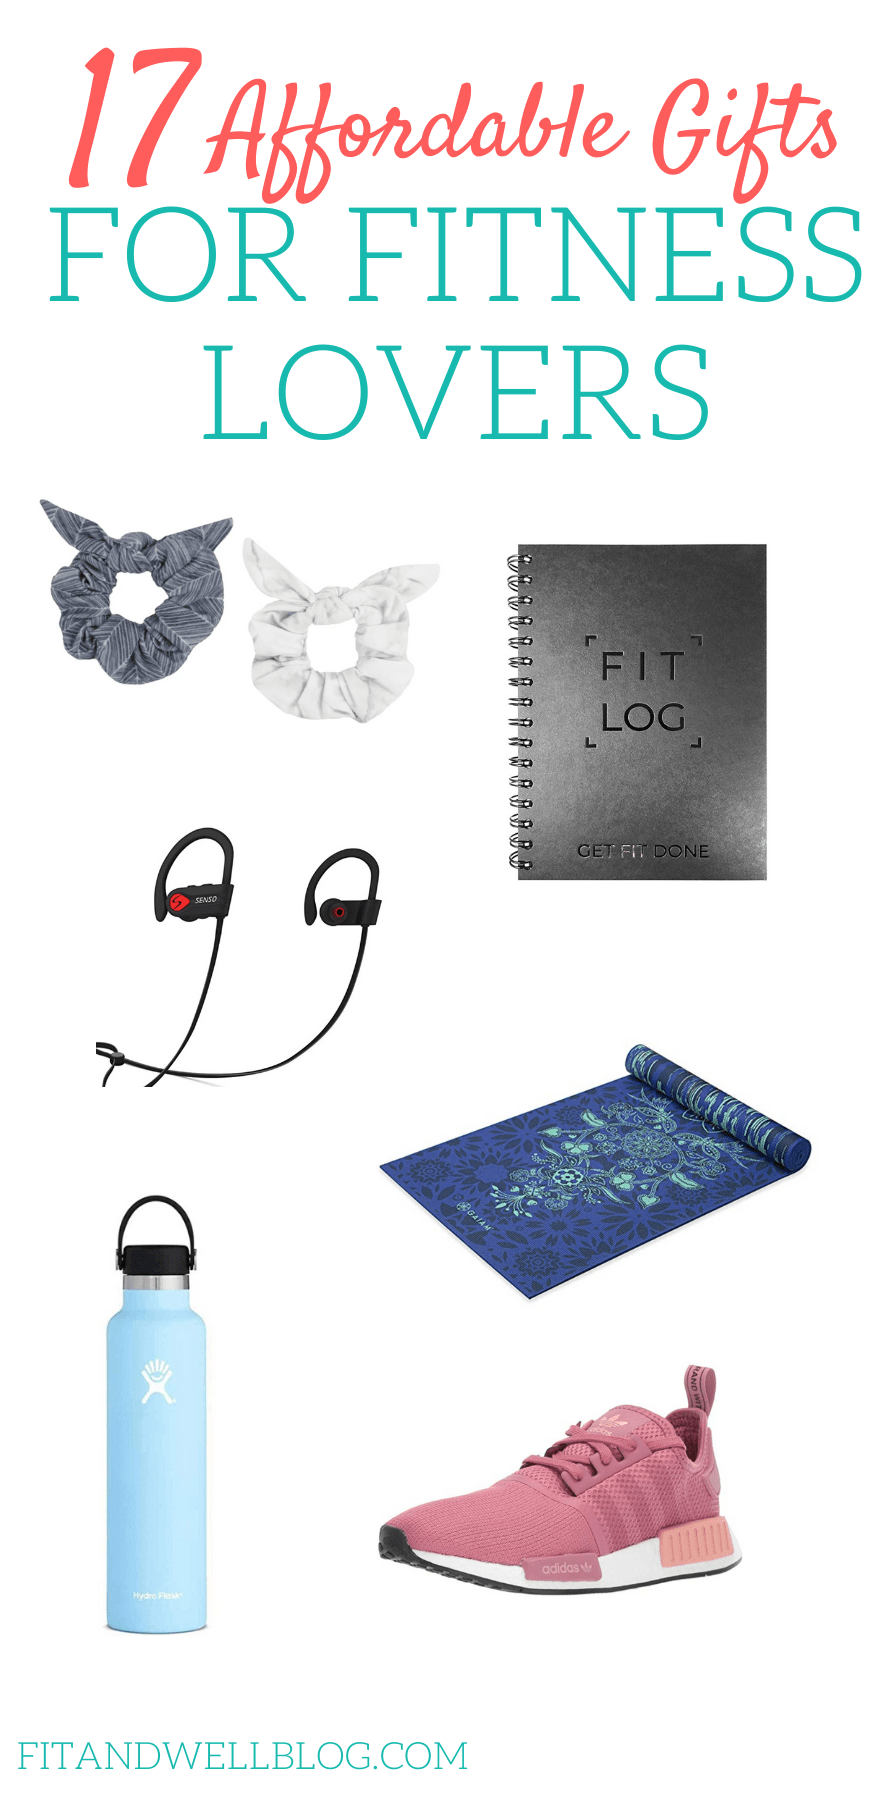 Affordable fitness gift ideas for fitness lovers! Any gal who loves fitness and healthy living will...